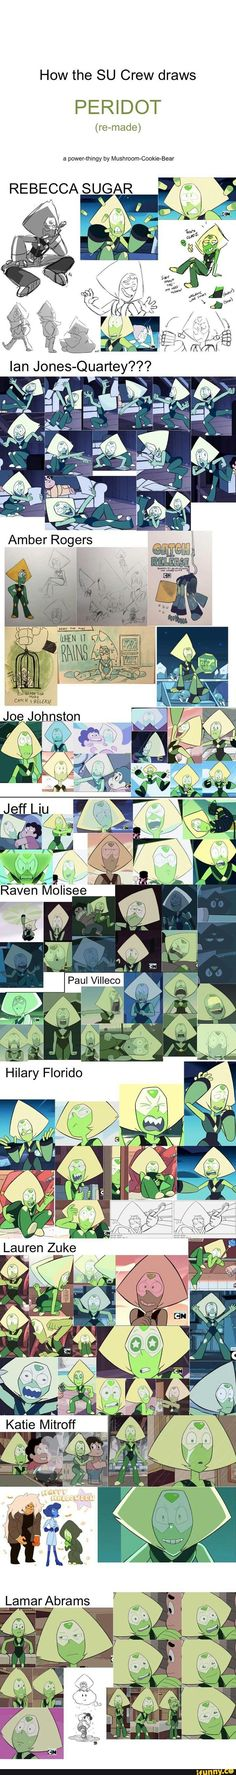 How the SU Crew draws Peridot ~ ! I absolutely looove the stylistic freedom this show encourages. UvU